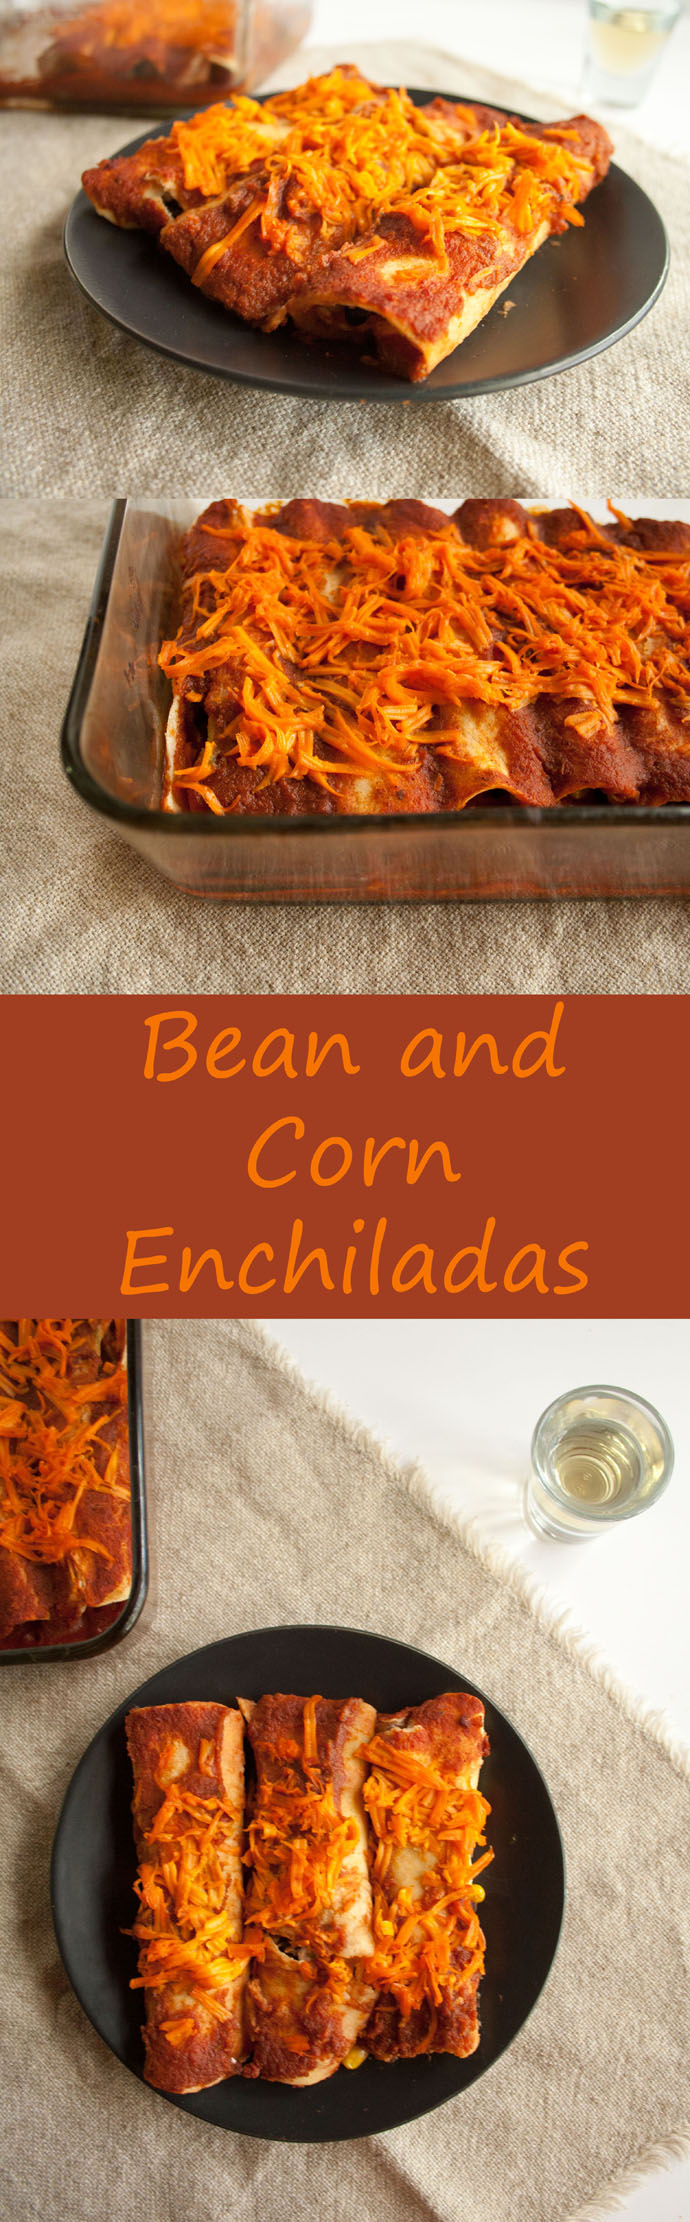 Bean and Corn Enchiladas (vegan, gluten free) - These rich enchiladas will become your new go-to comfort food. Simple ingredients, but big on flavor!